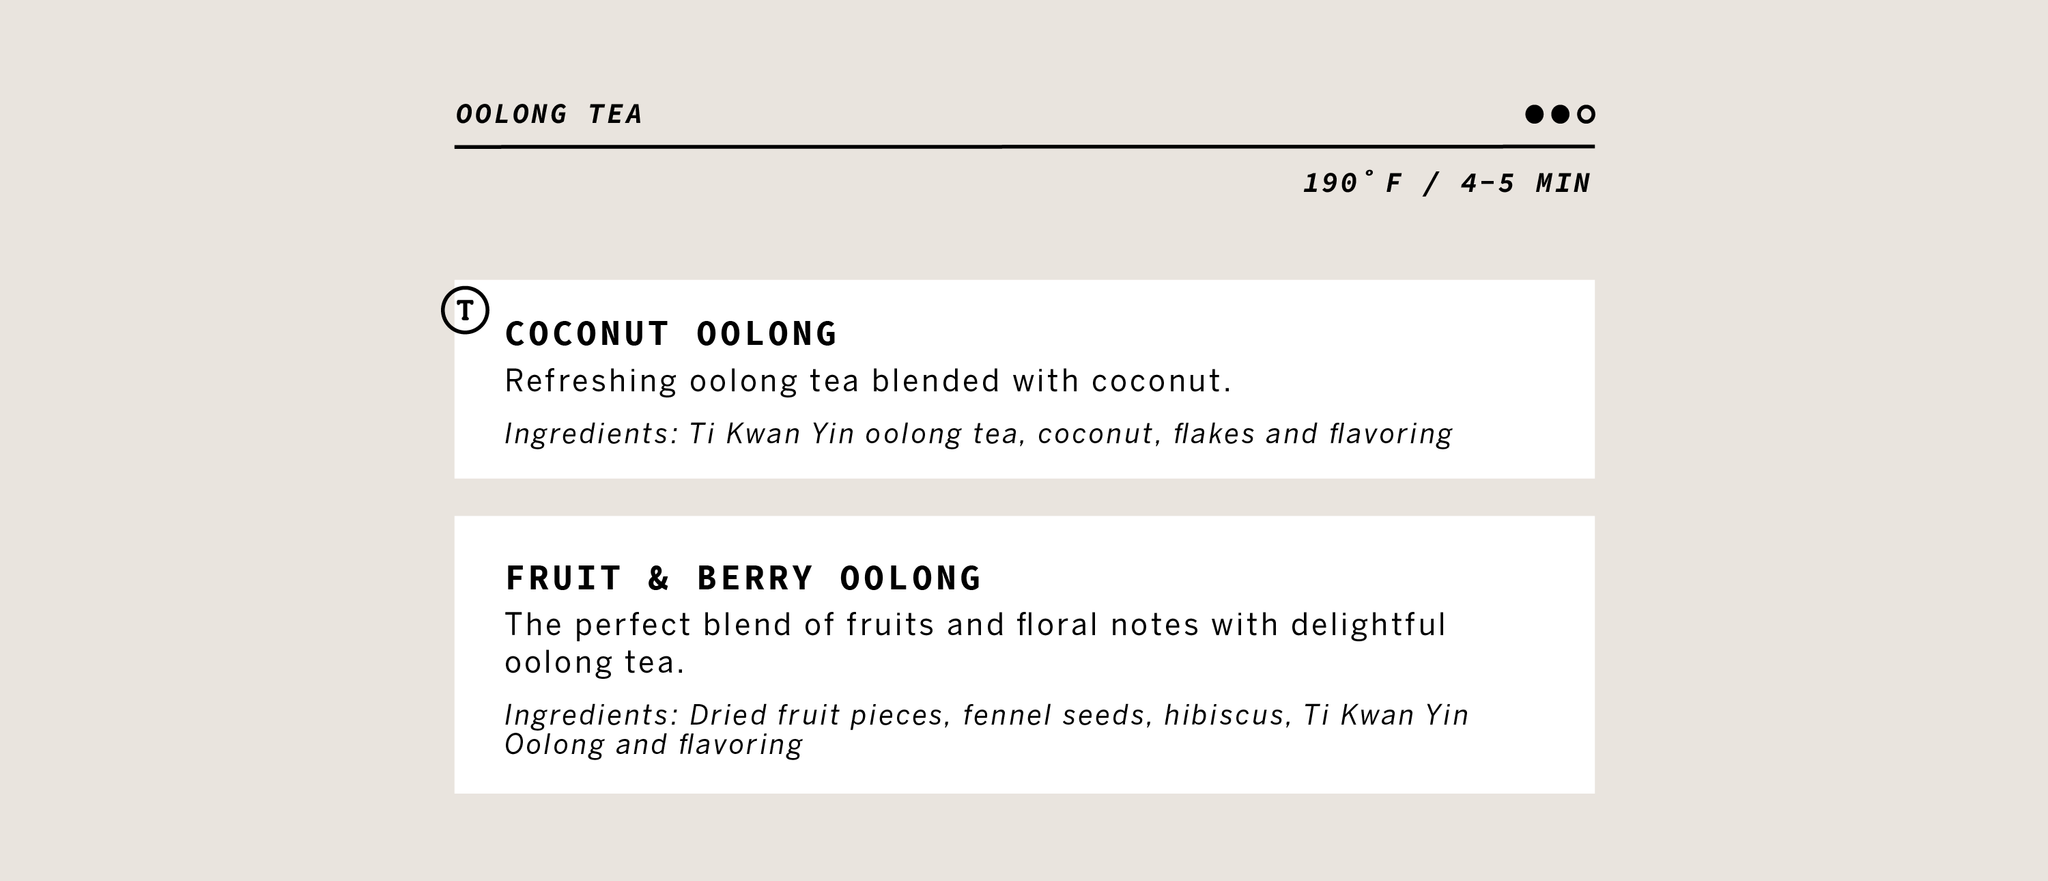 Oolong Tea Information